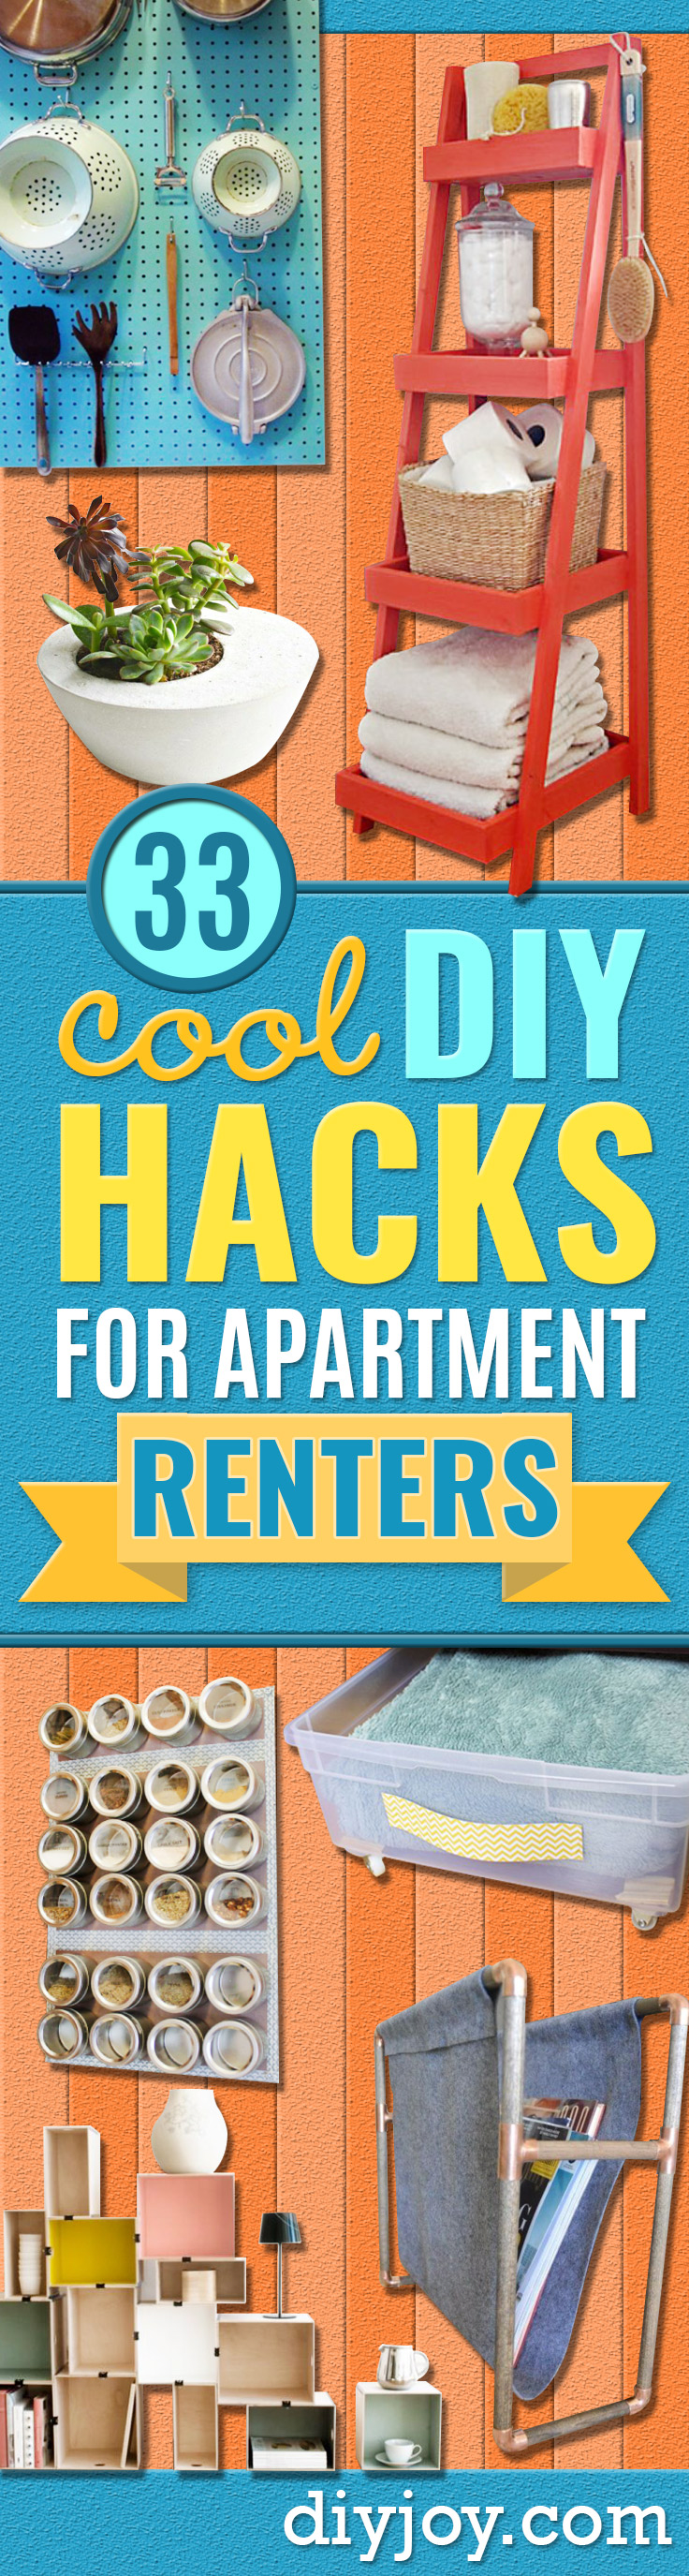 DIY Hacks for Renters - Easy Ways to Decorate and Fix Things on Rental Property - Decorate Walls, Cheap Ideas for Making an Apartment, Small Space or Tiny Closet Work For You - Quick Hacks and DIY Projects on A Budget - Step by Step Tutorials and Instructions for Simple Home Decor http://diyjoy.com/diy-hacks-renters